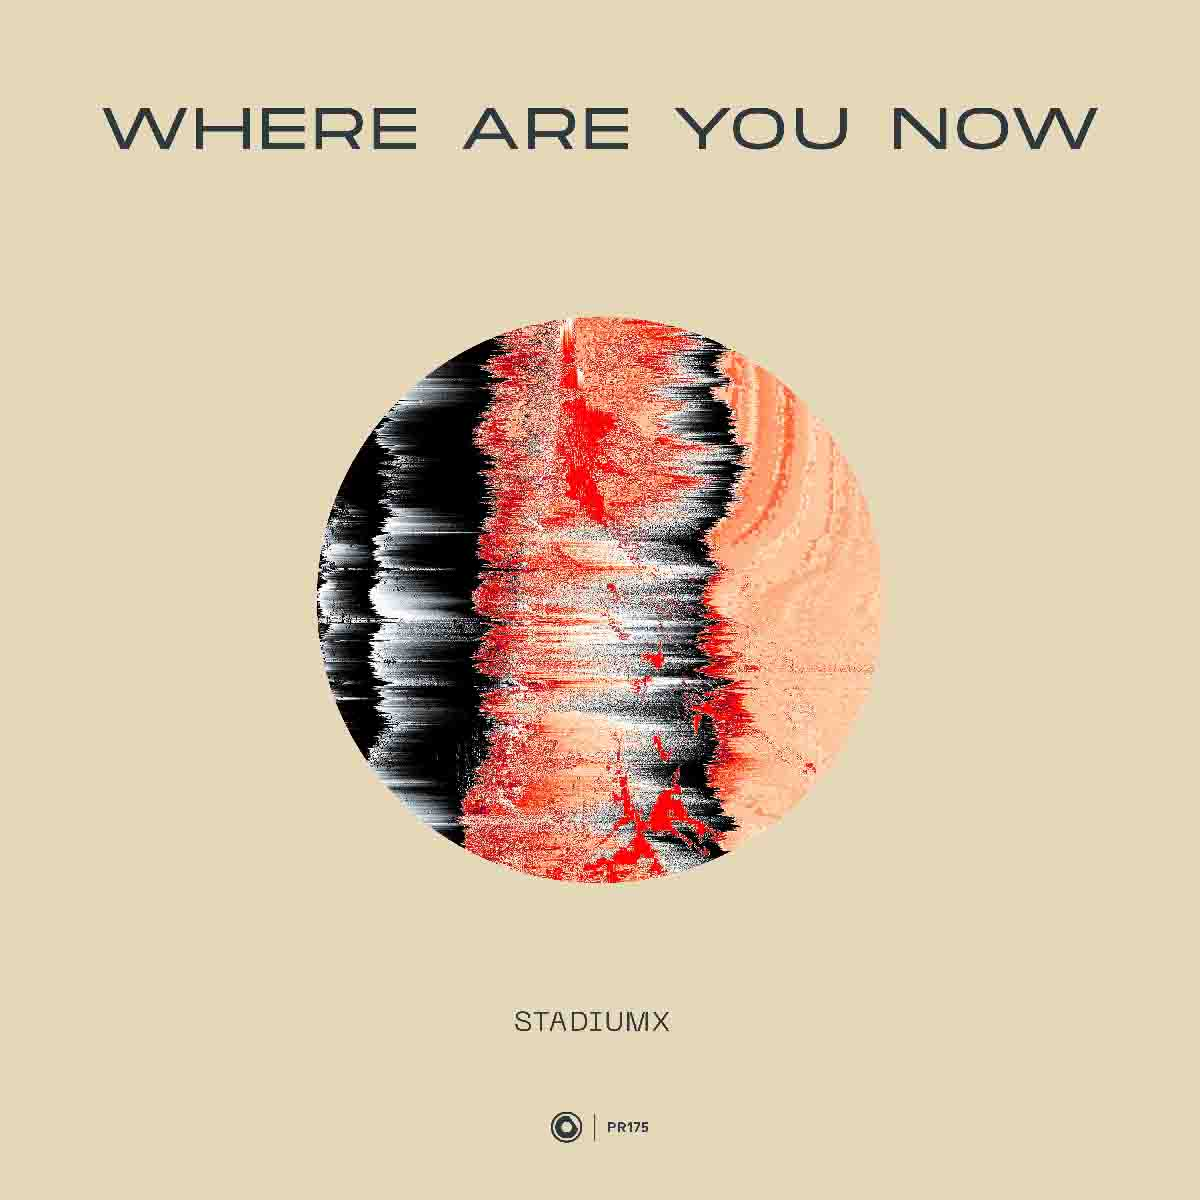 STADIUMX - Where Are You Now